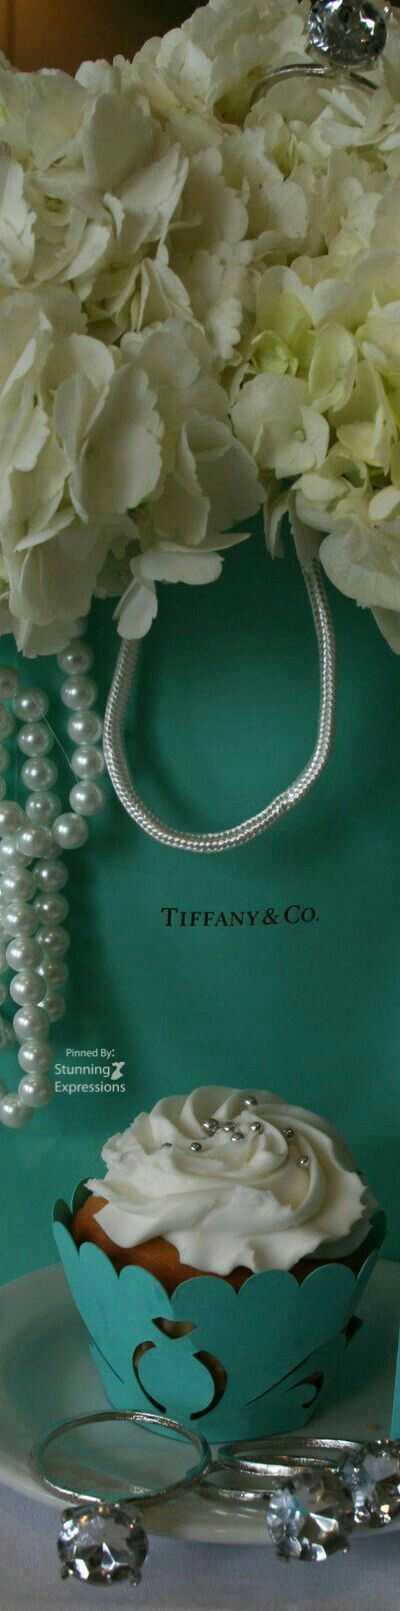 173 best Tiffany Lifestyle images by Debbie Warren-Berry on ...